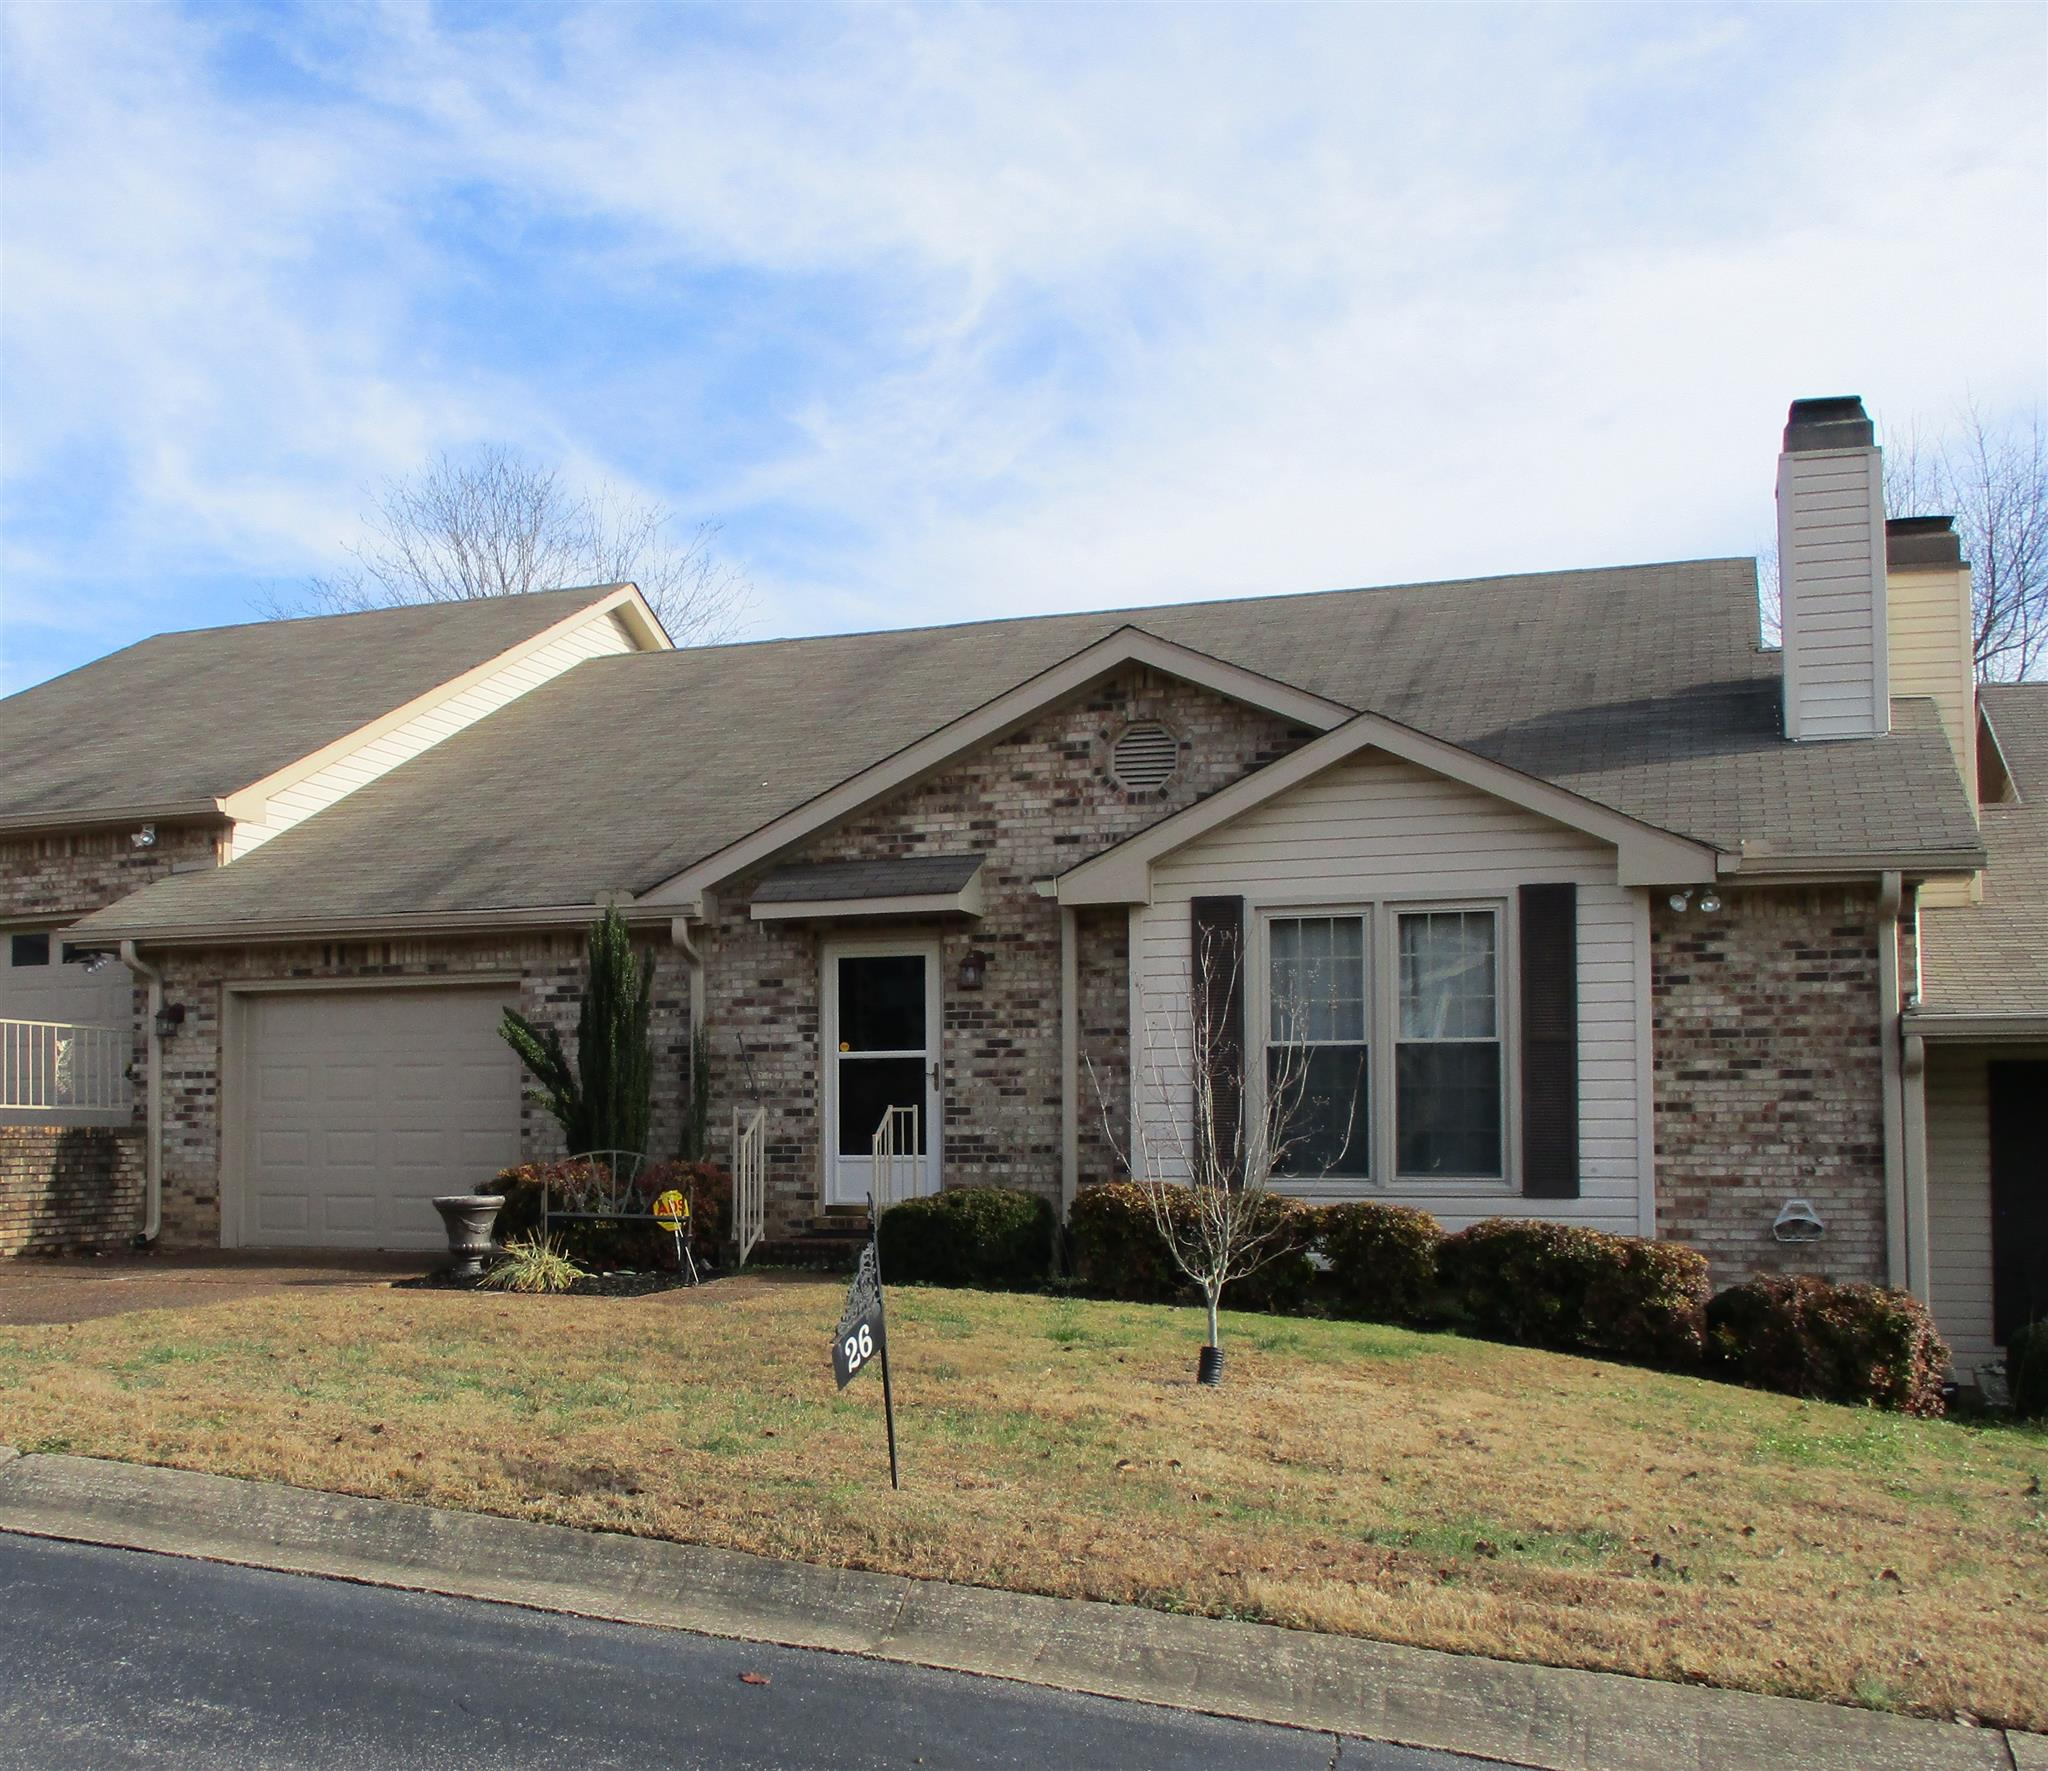 1818 Memorial Dr, Clarksville in Montgomery County County, TN 37043 Home for Sale